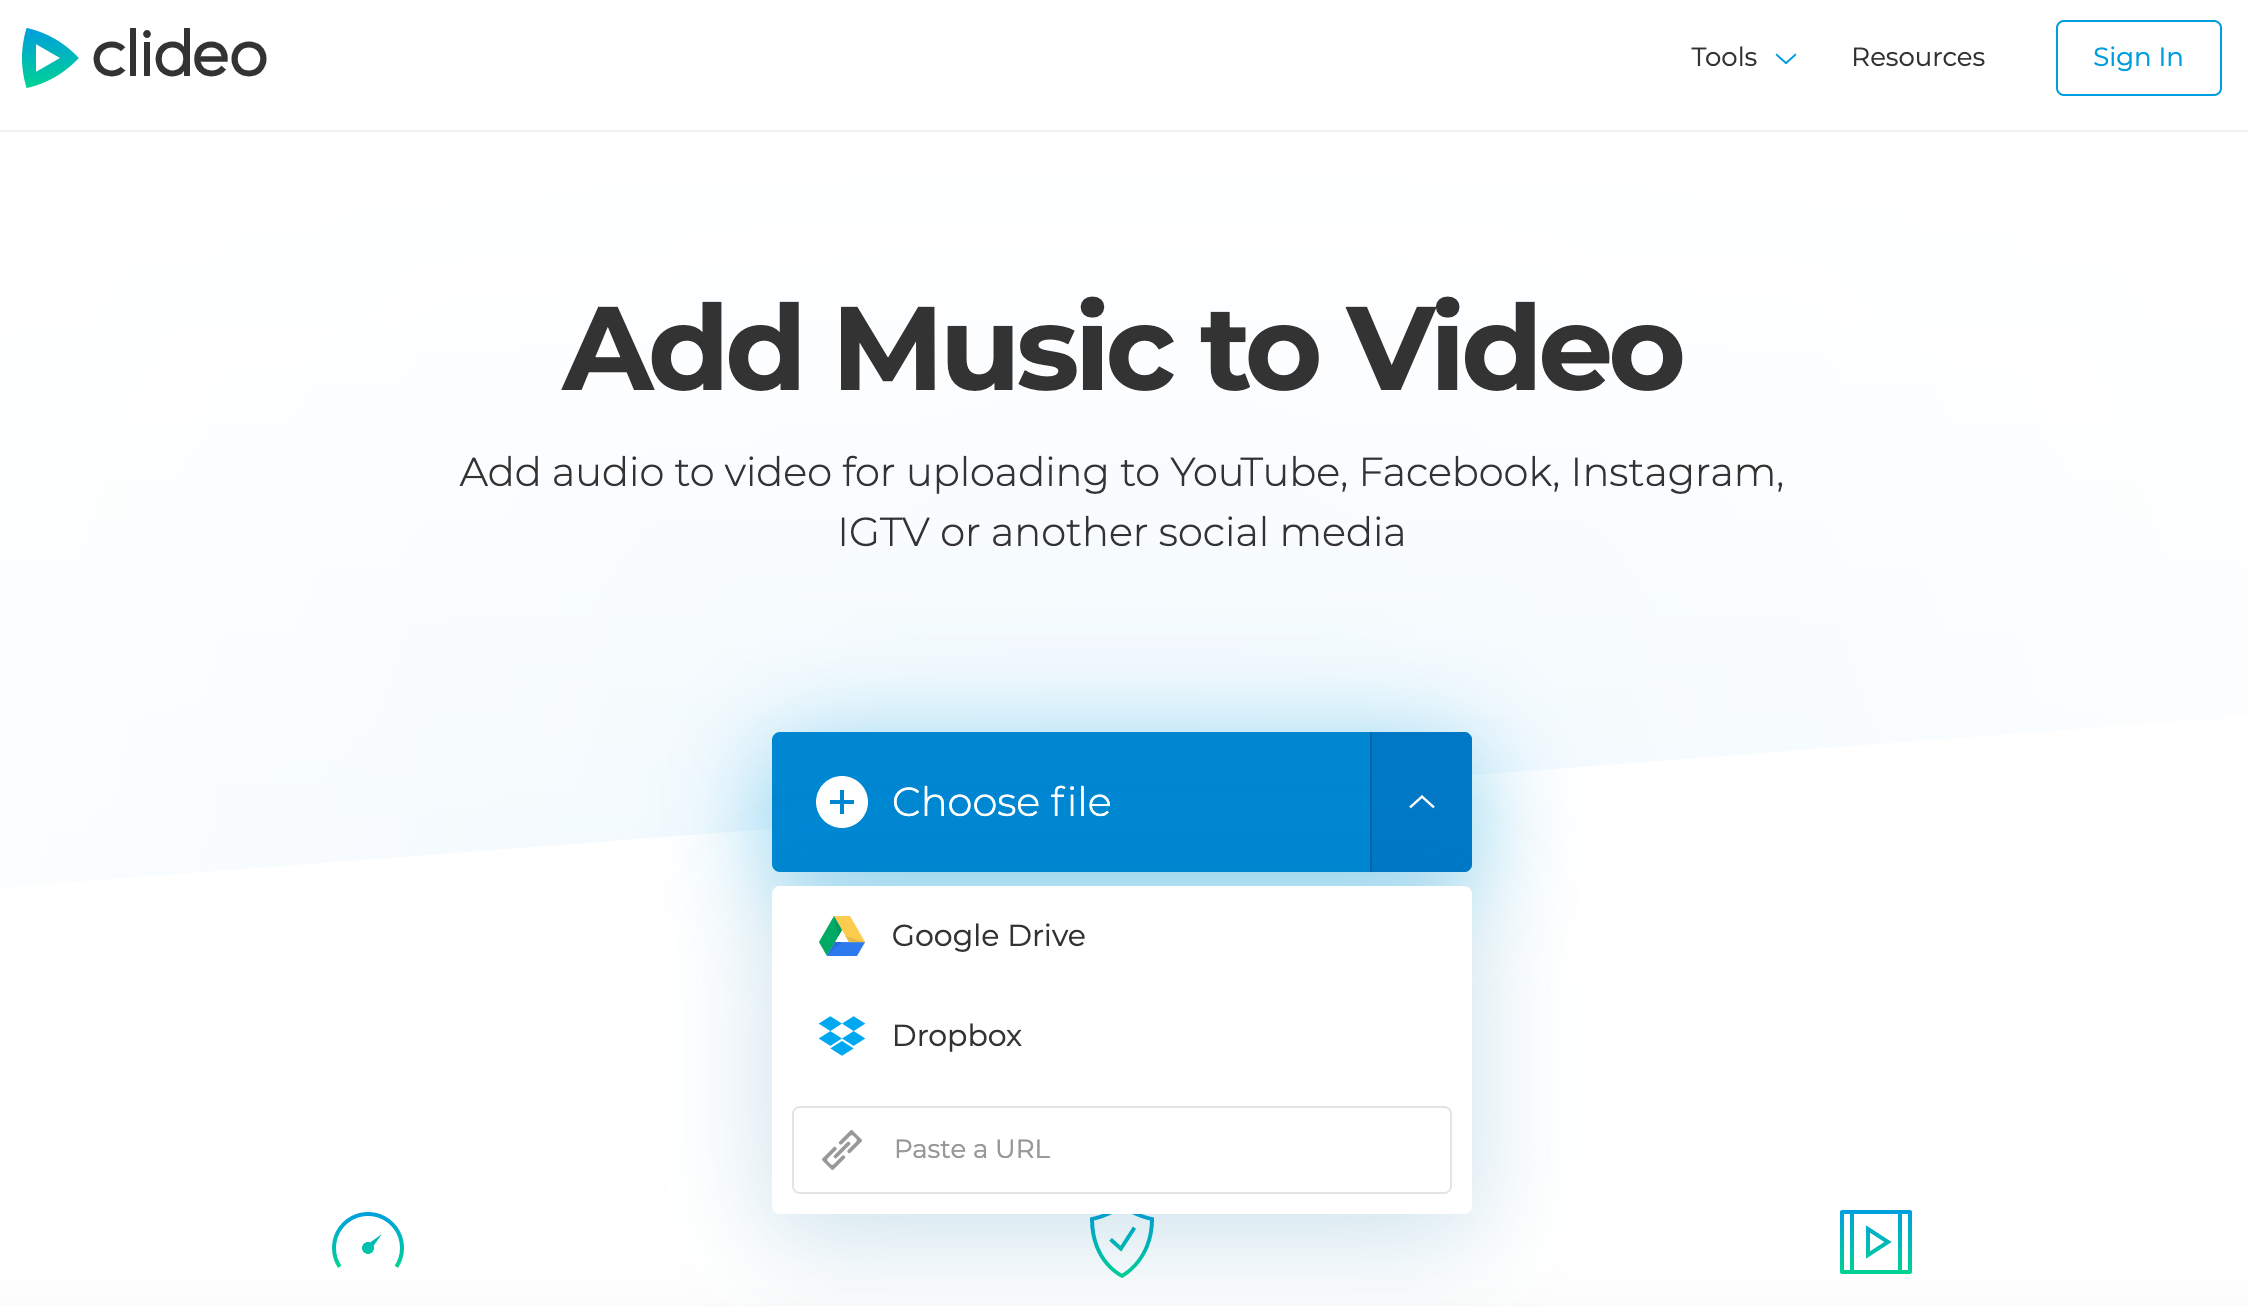 Upload a video you want to add audio to